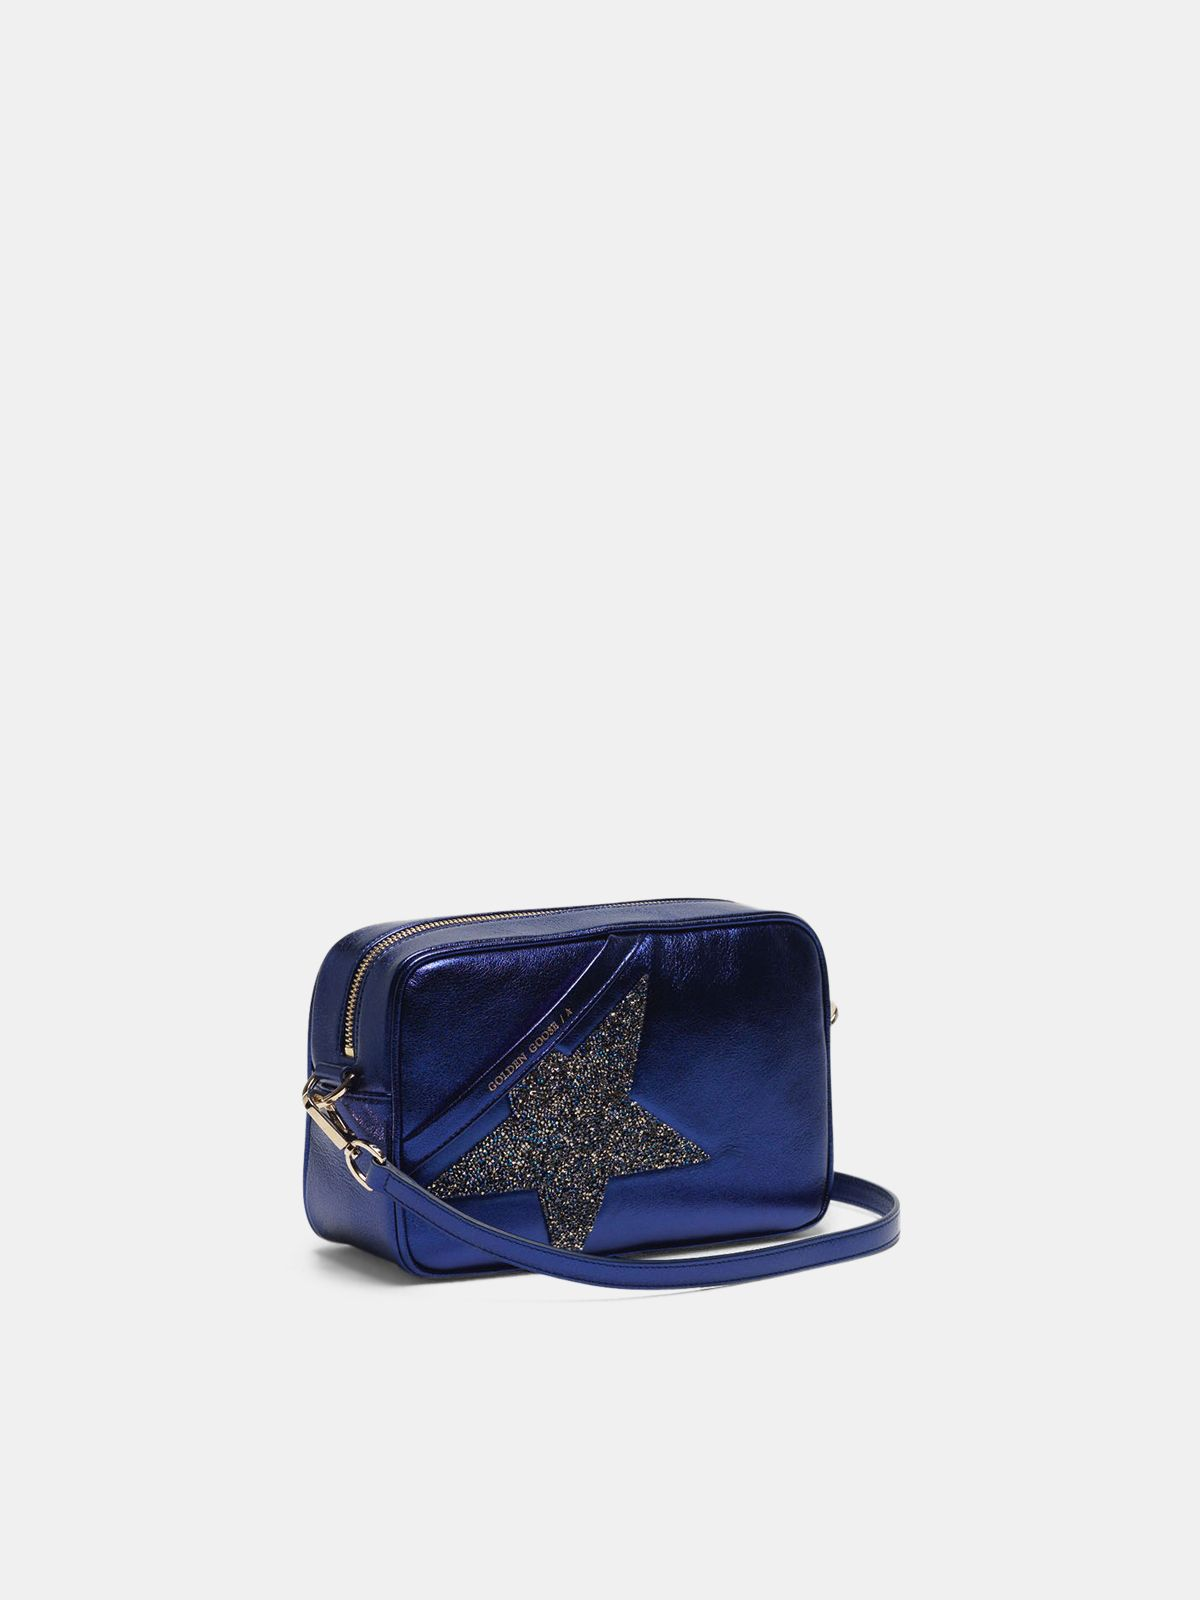 Golden Goose - Star Bag made of laminated leather with Swarovski crystals in